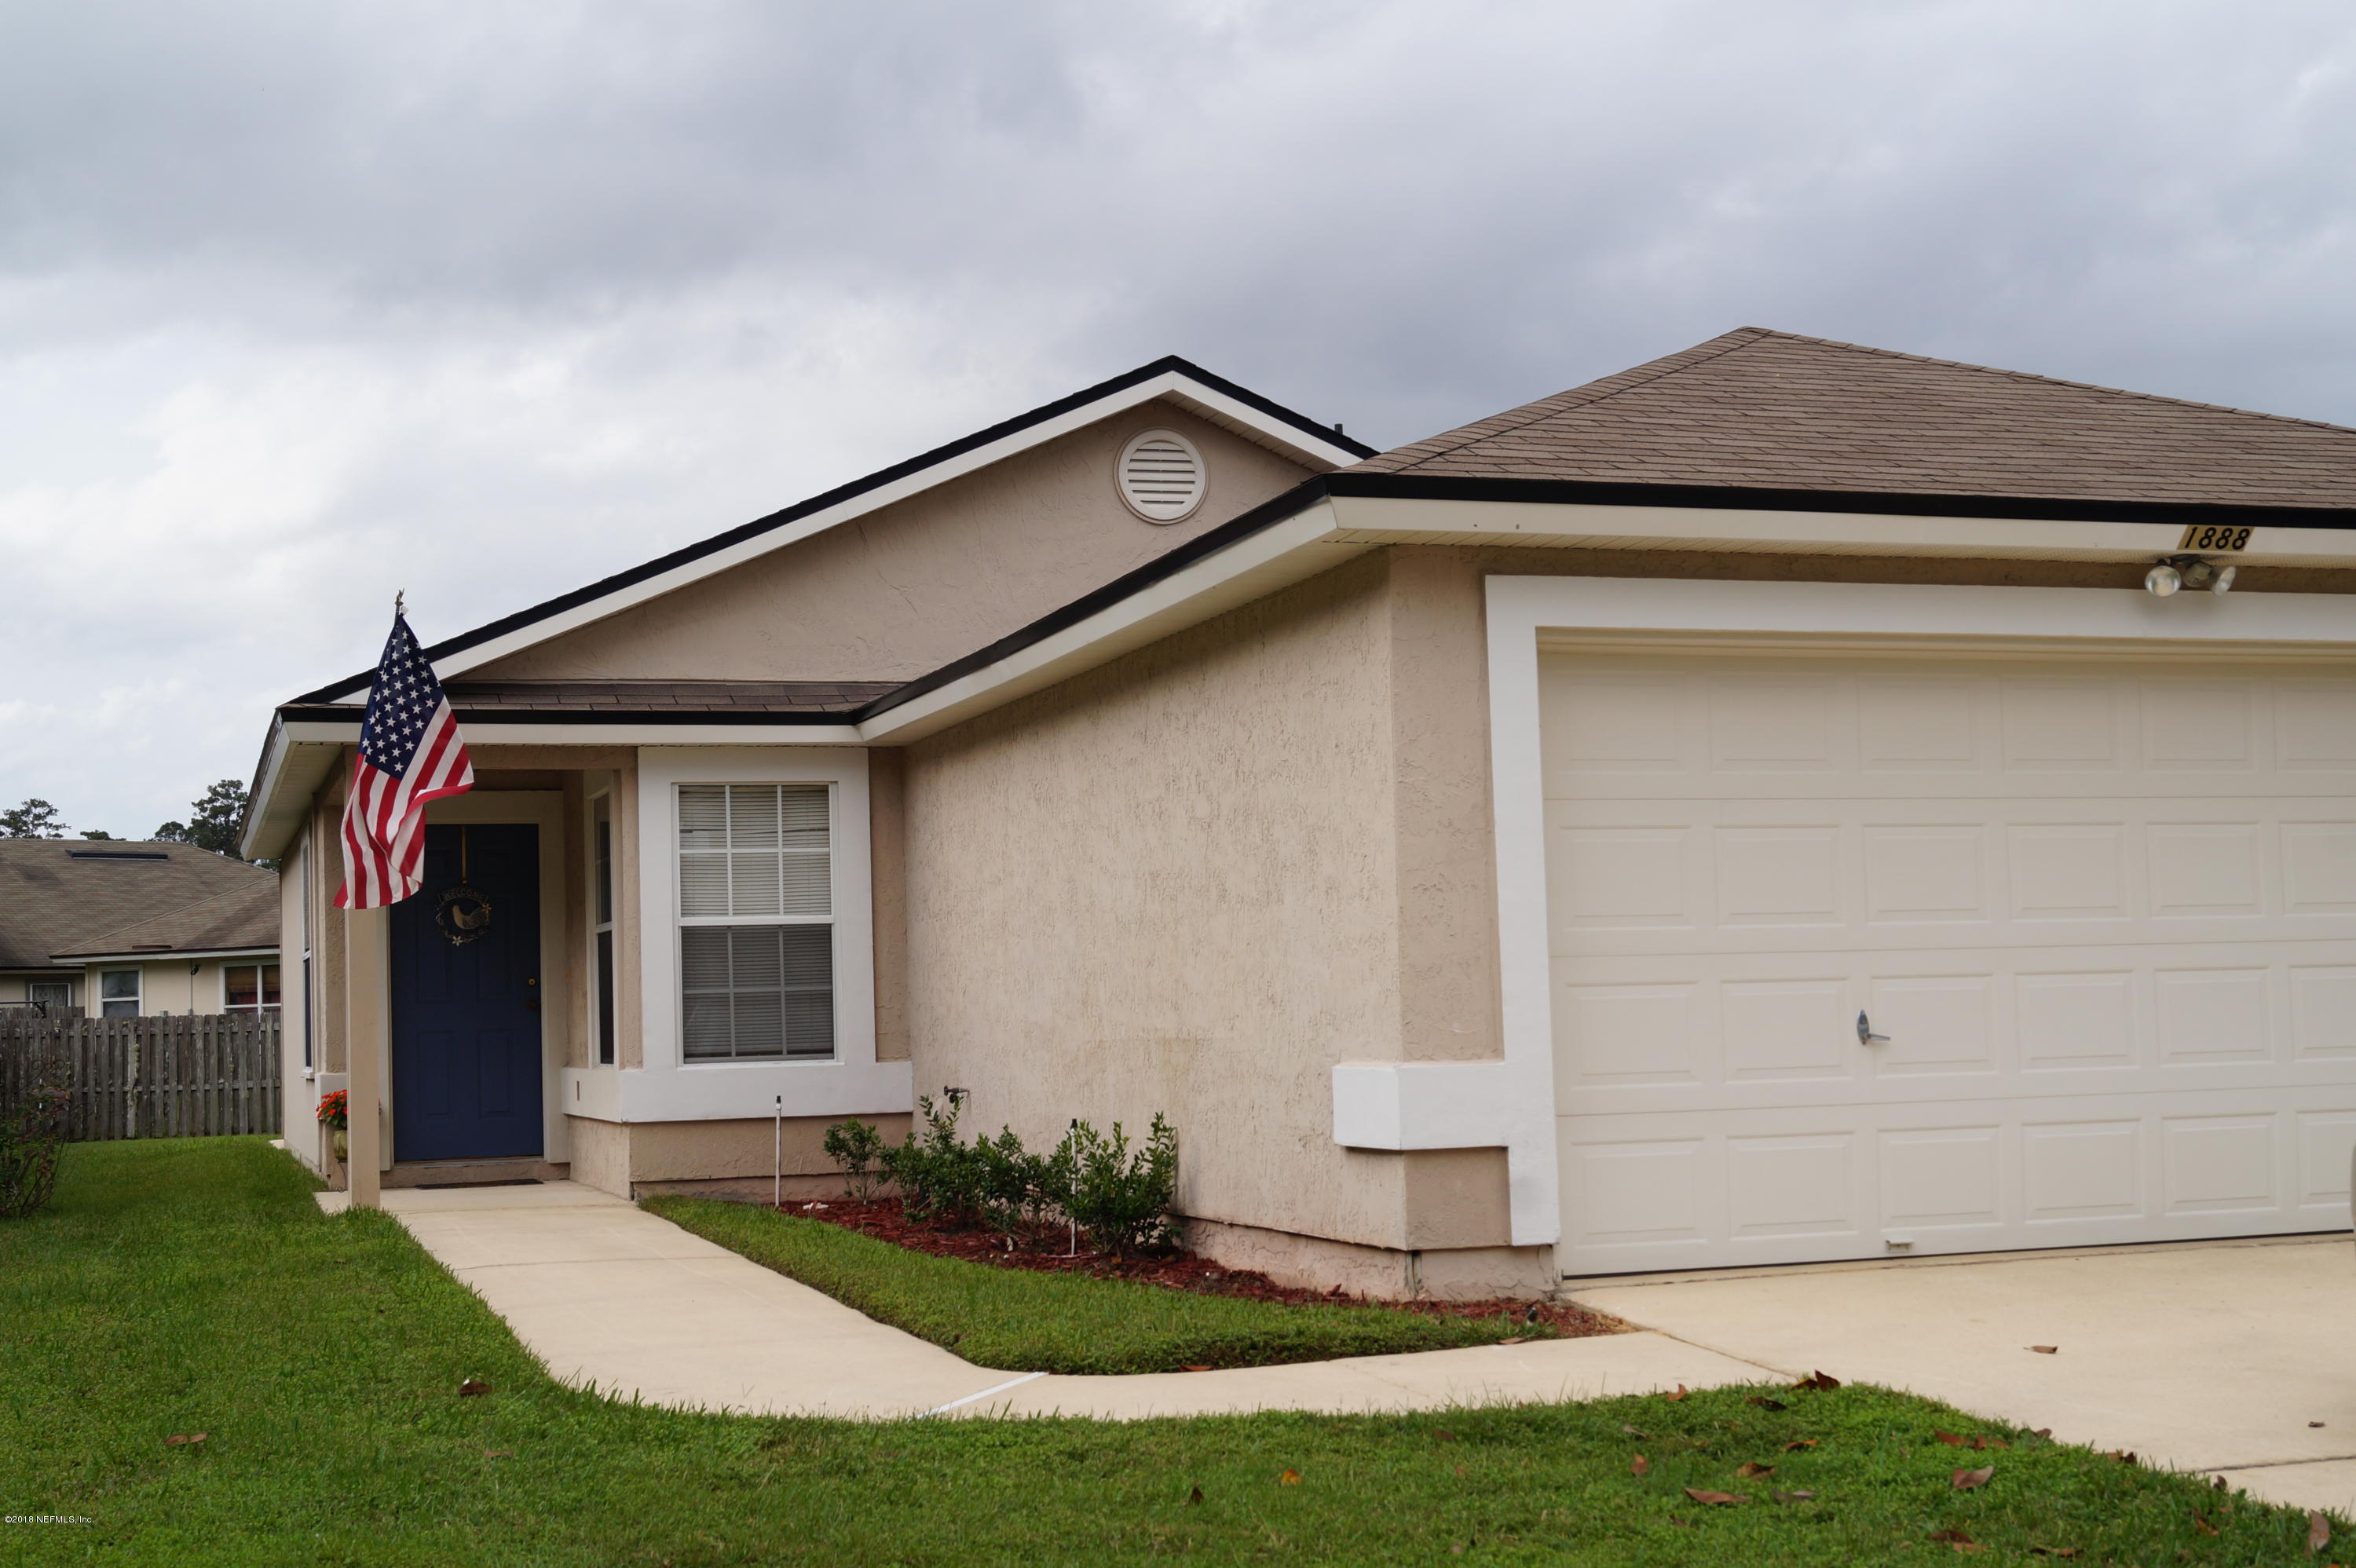 1888 PINETA COVE, MIDDLEBURG, FLORIDA 32068, 3 Bedrooms Bedrooms, ,2 BathroomsBathrooms,Residential - single family,For sale,PINETA COVE,966738